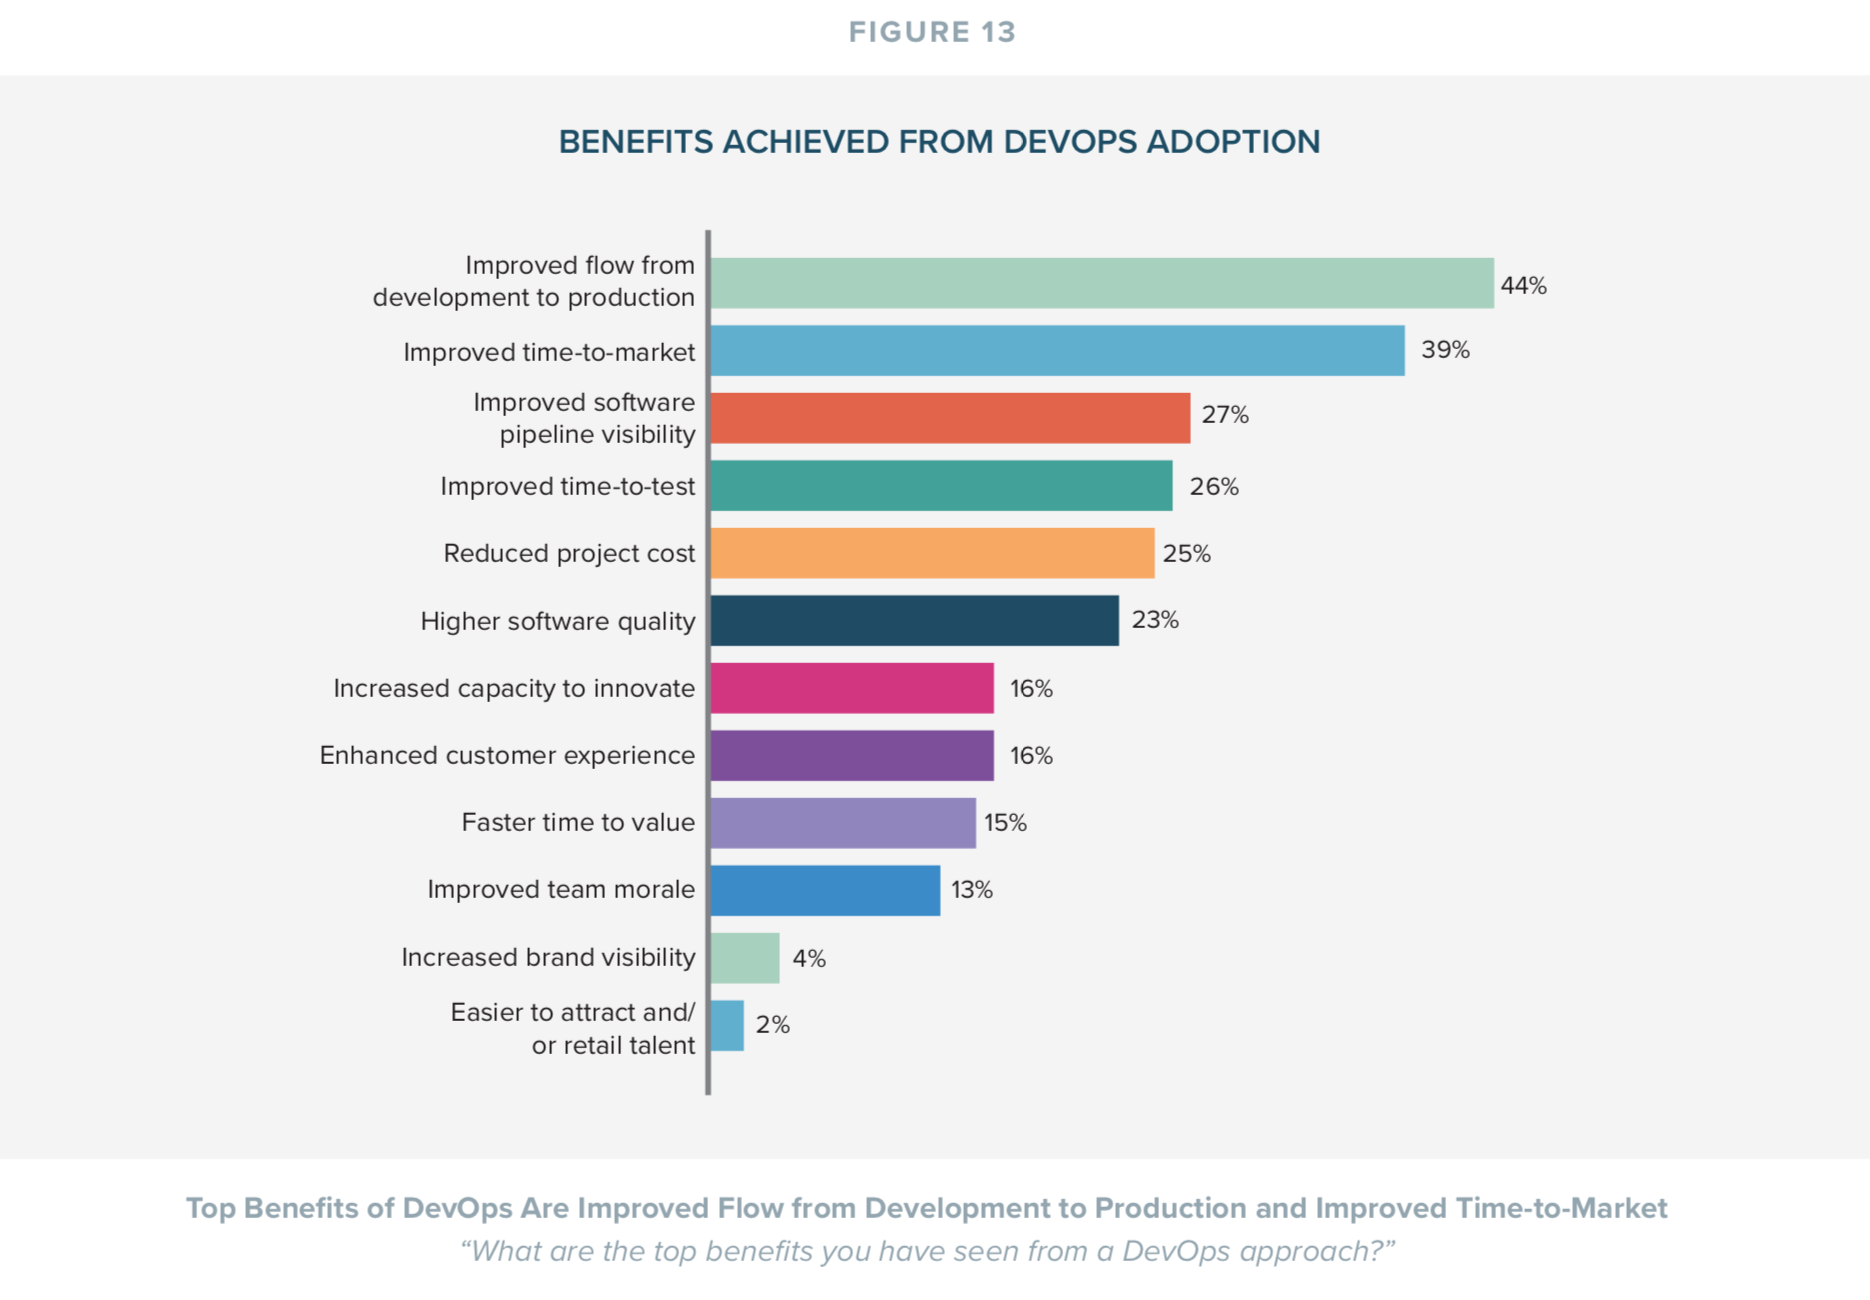 Benefits Achieved Through DevOps Adoption